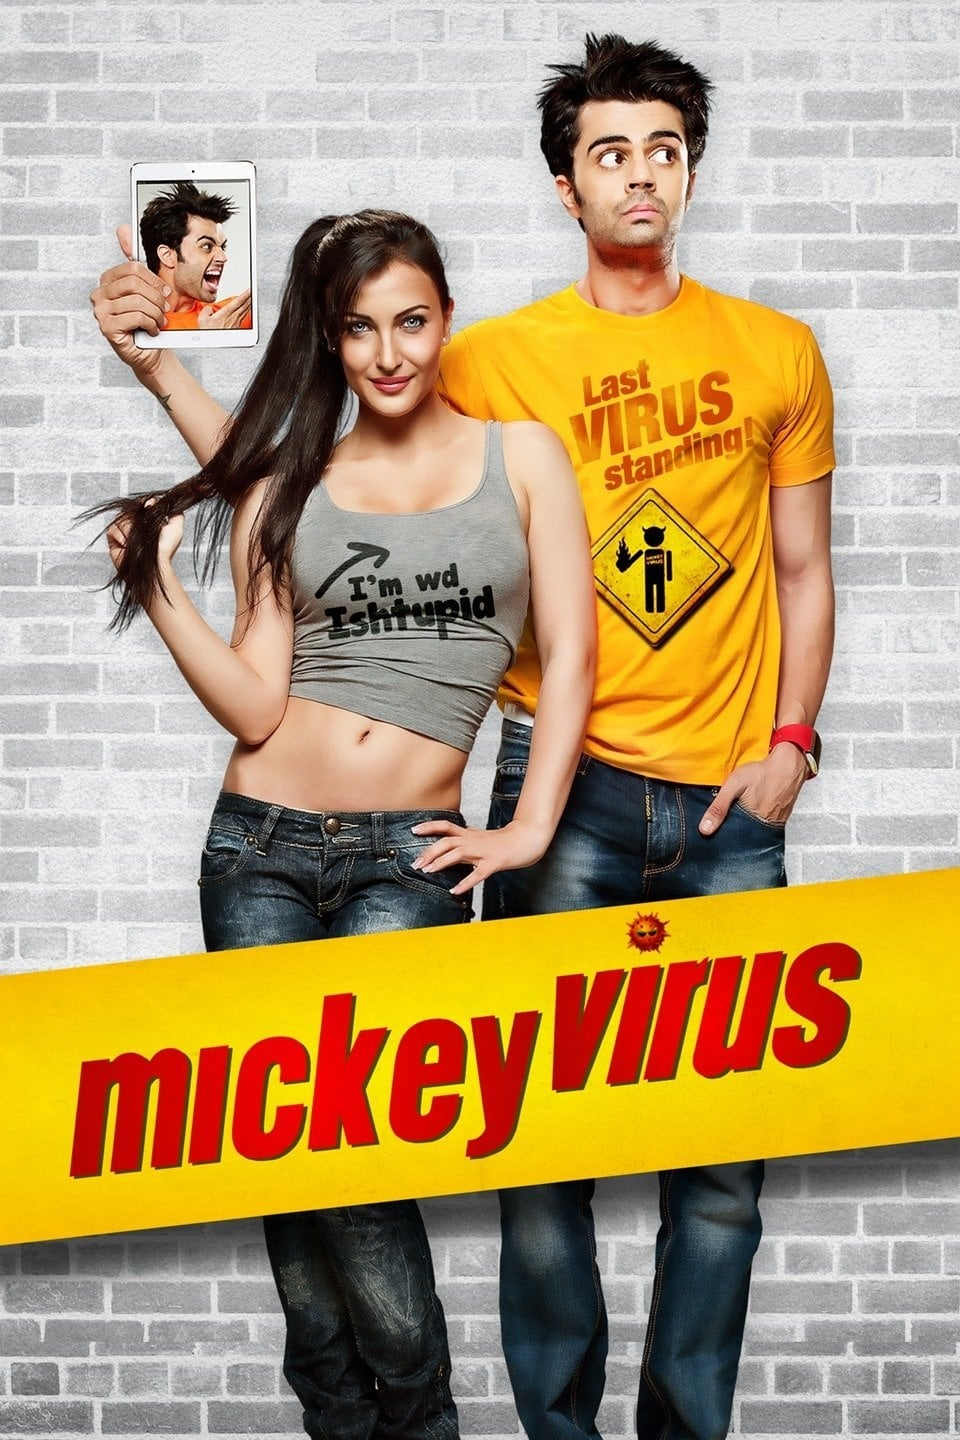 Mickey Virus (2013) 1080p AMZN WeB-DL H264 DDP 2.0 – DusIcTv | 7.36 GB |